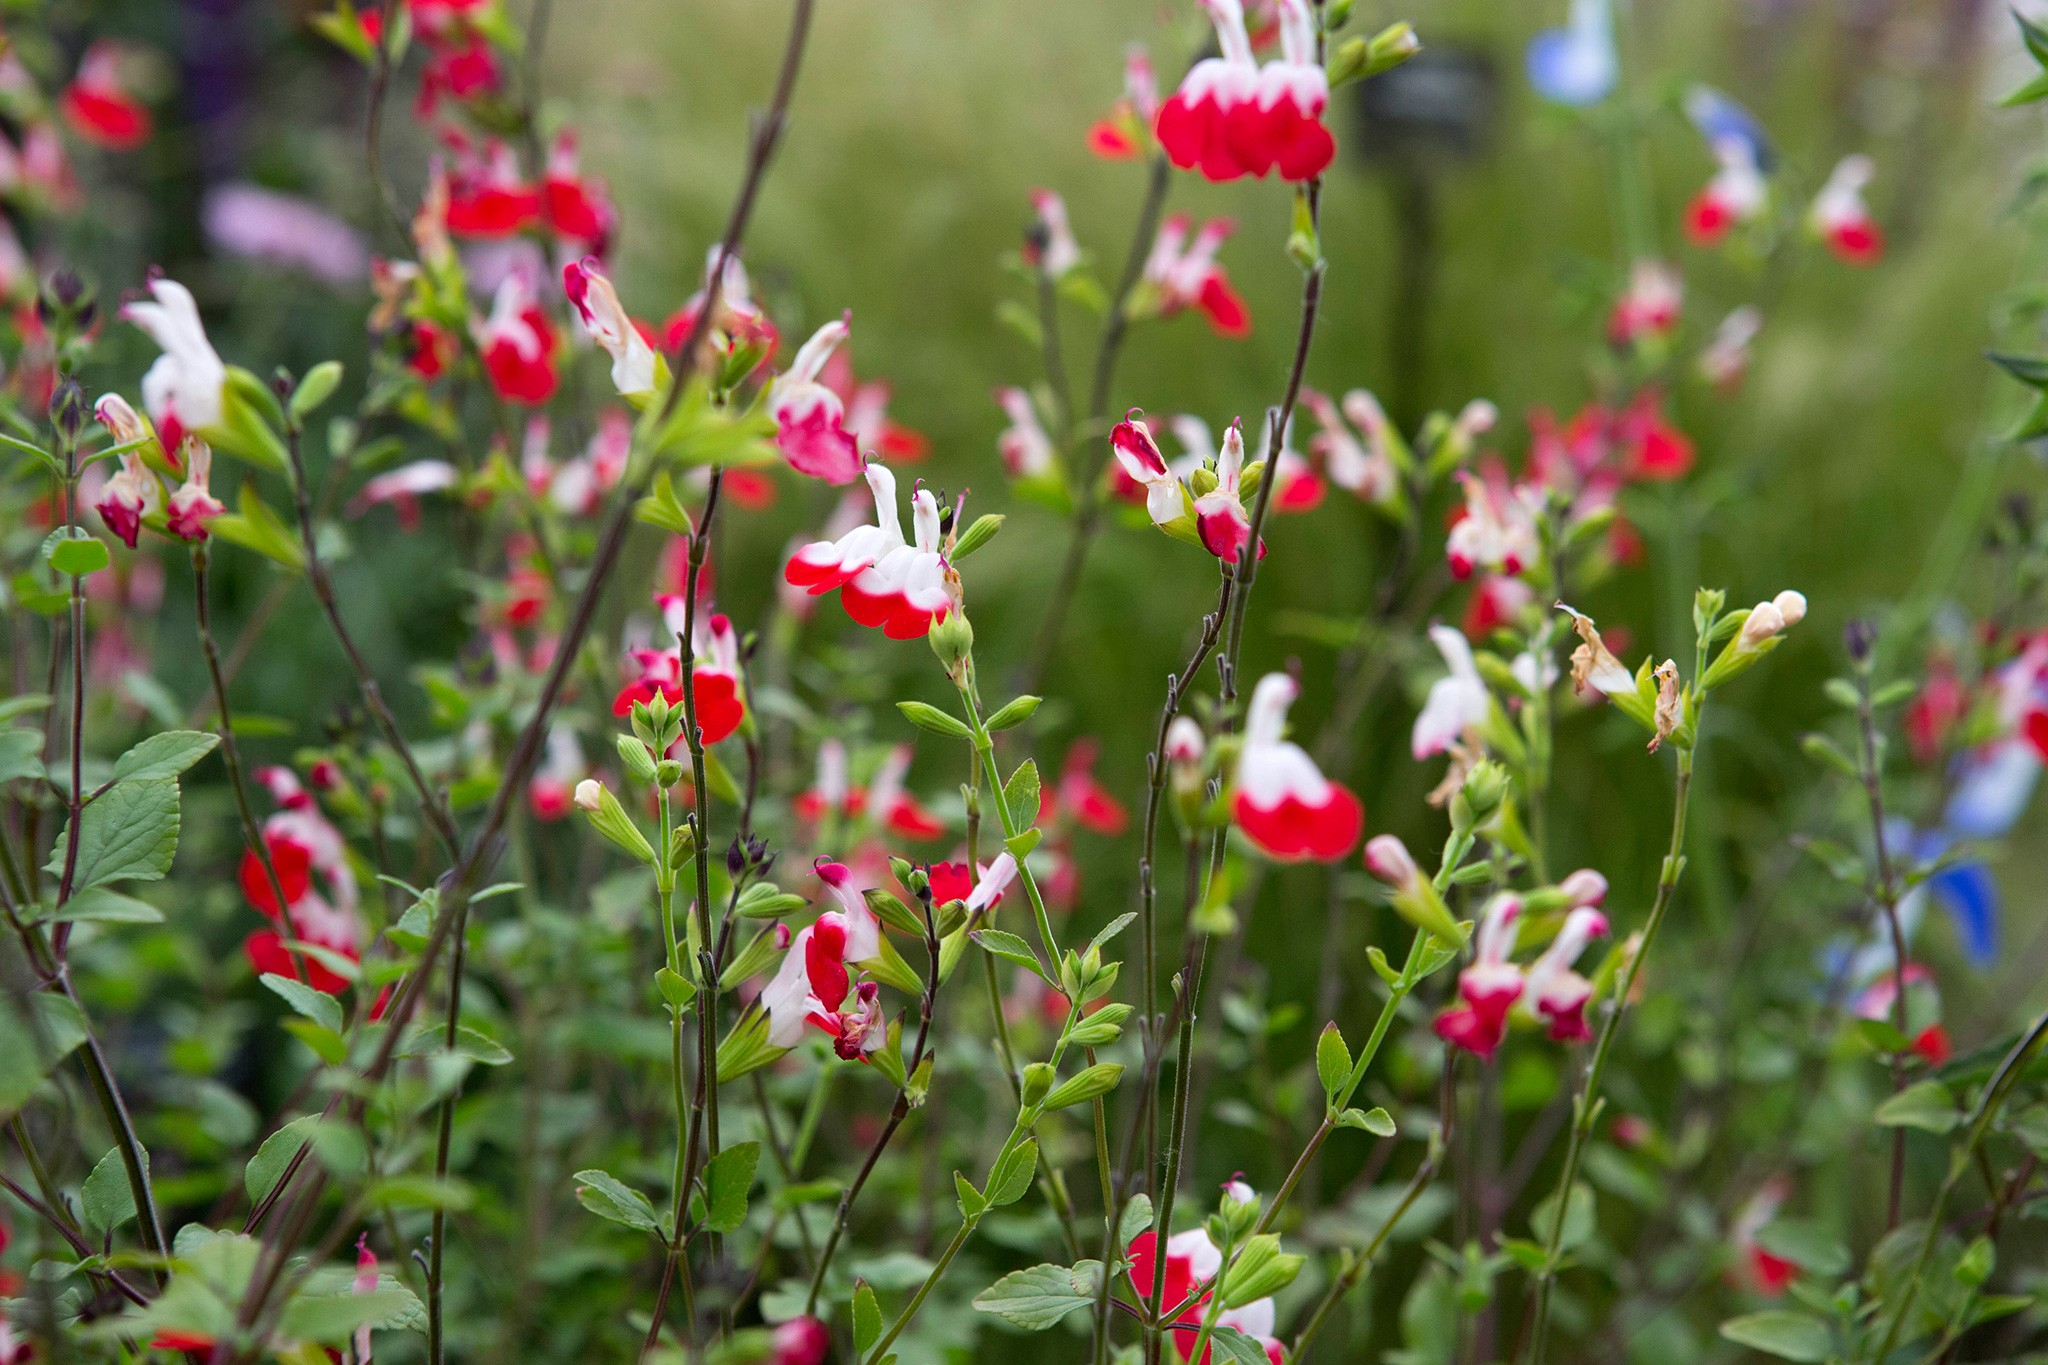 Salvia x jamensis 'Hot Lips'